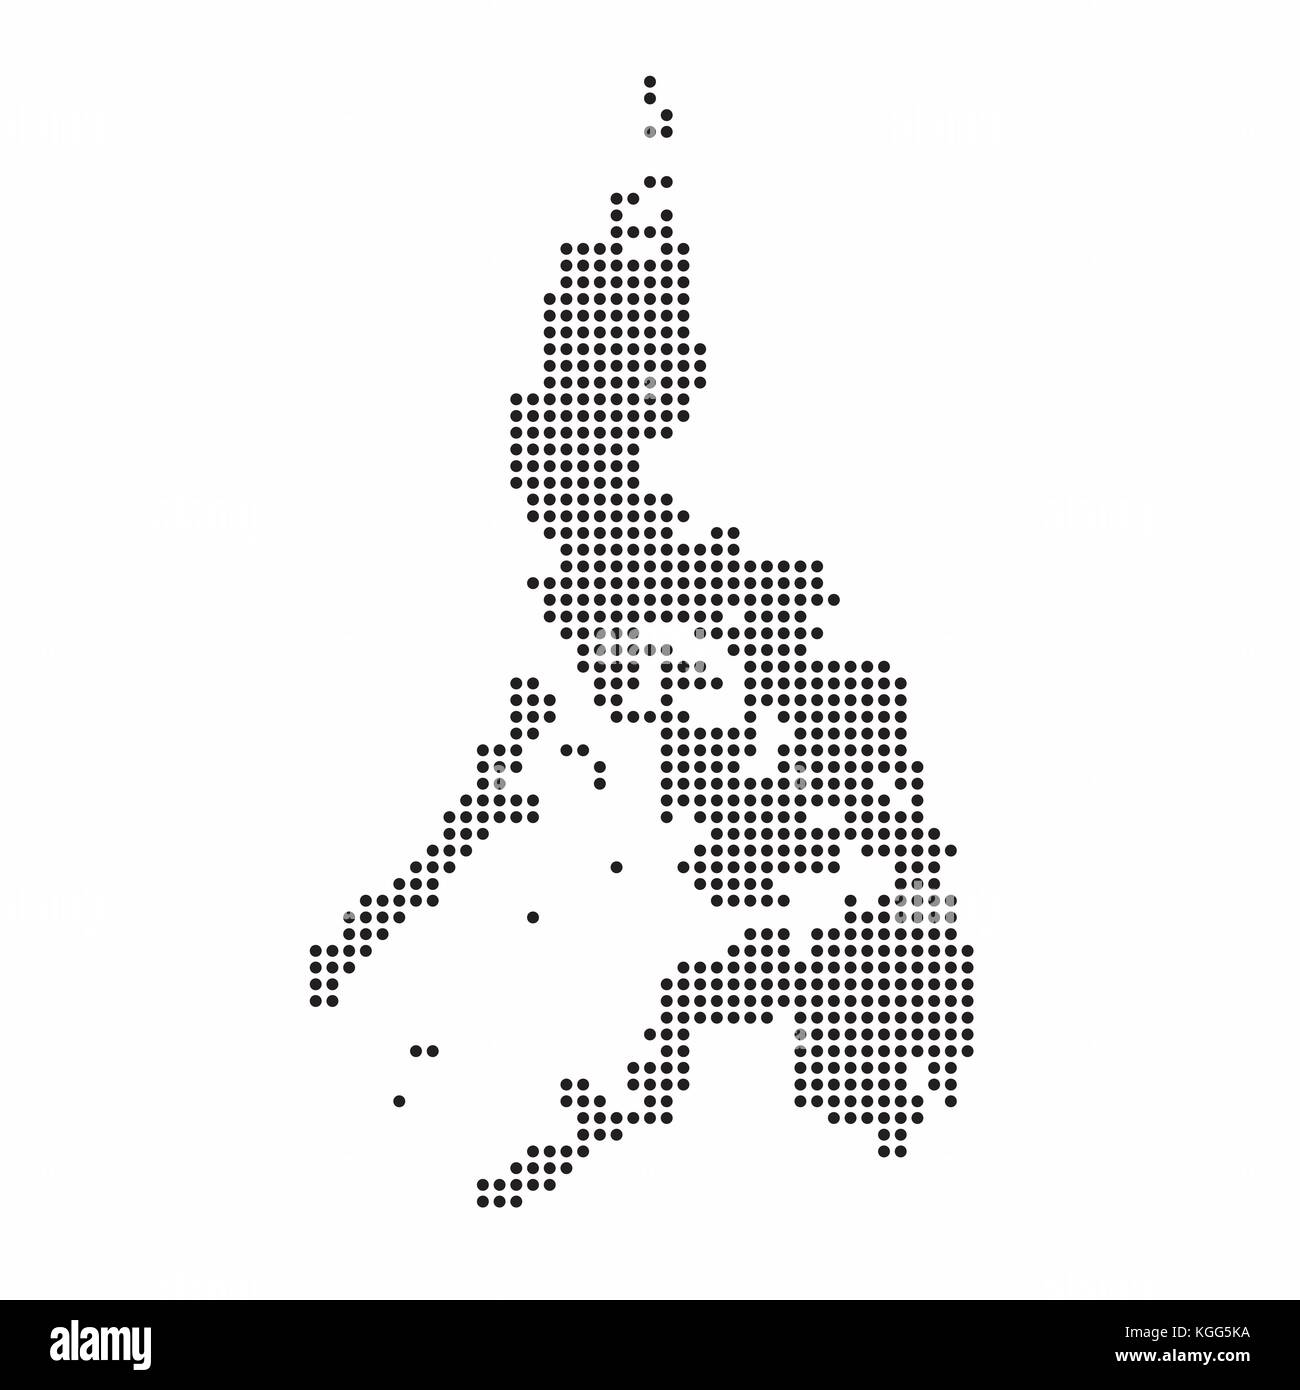 Philippines Map Black And White.Map Of The Philippines Black And White Stock Photos Images Alamy